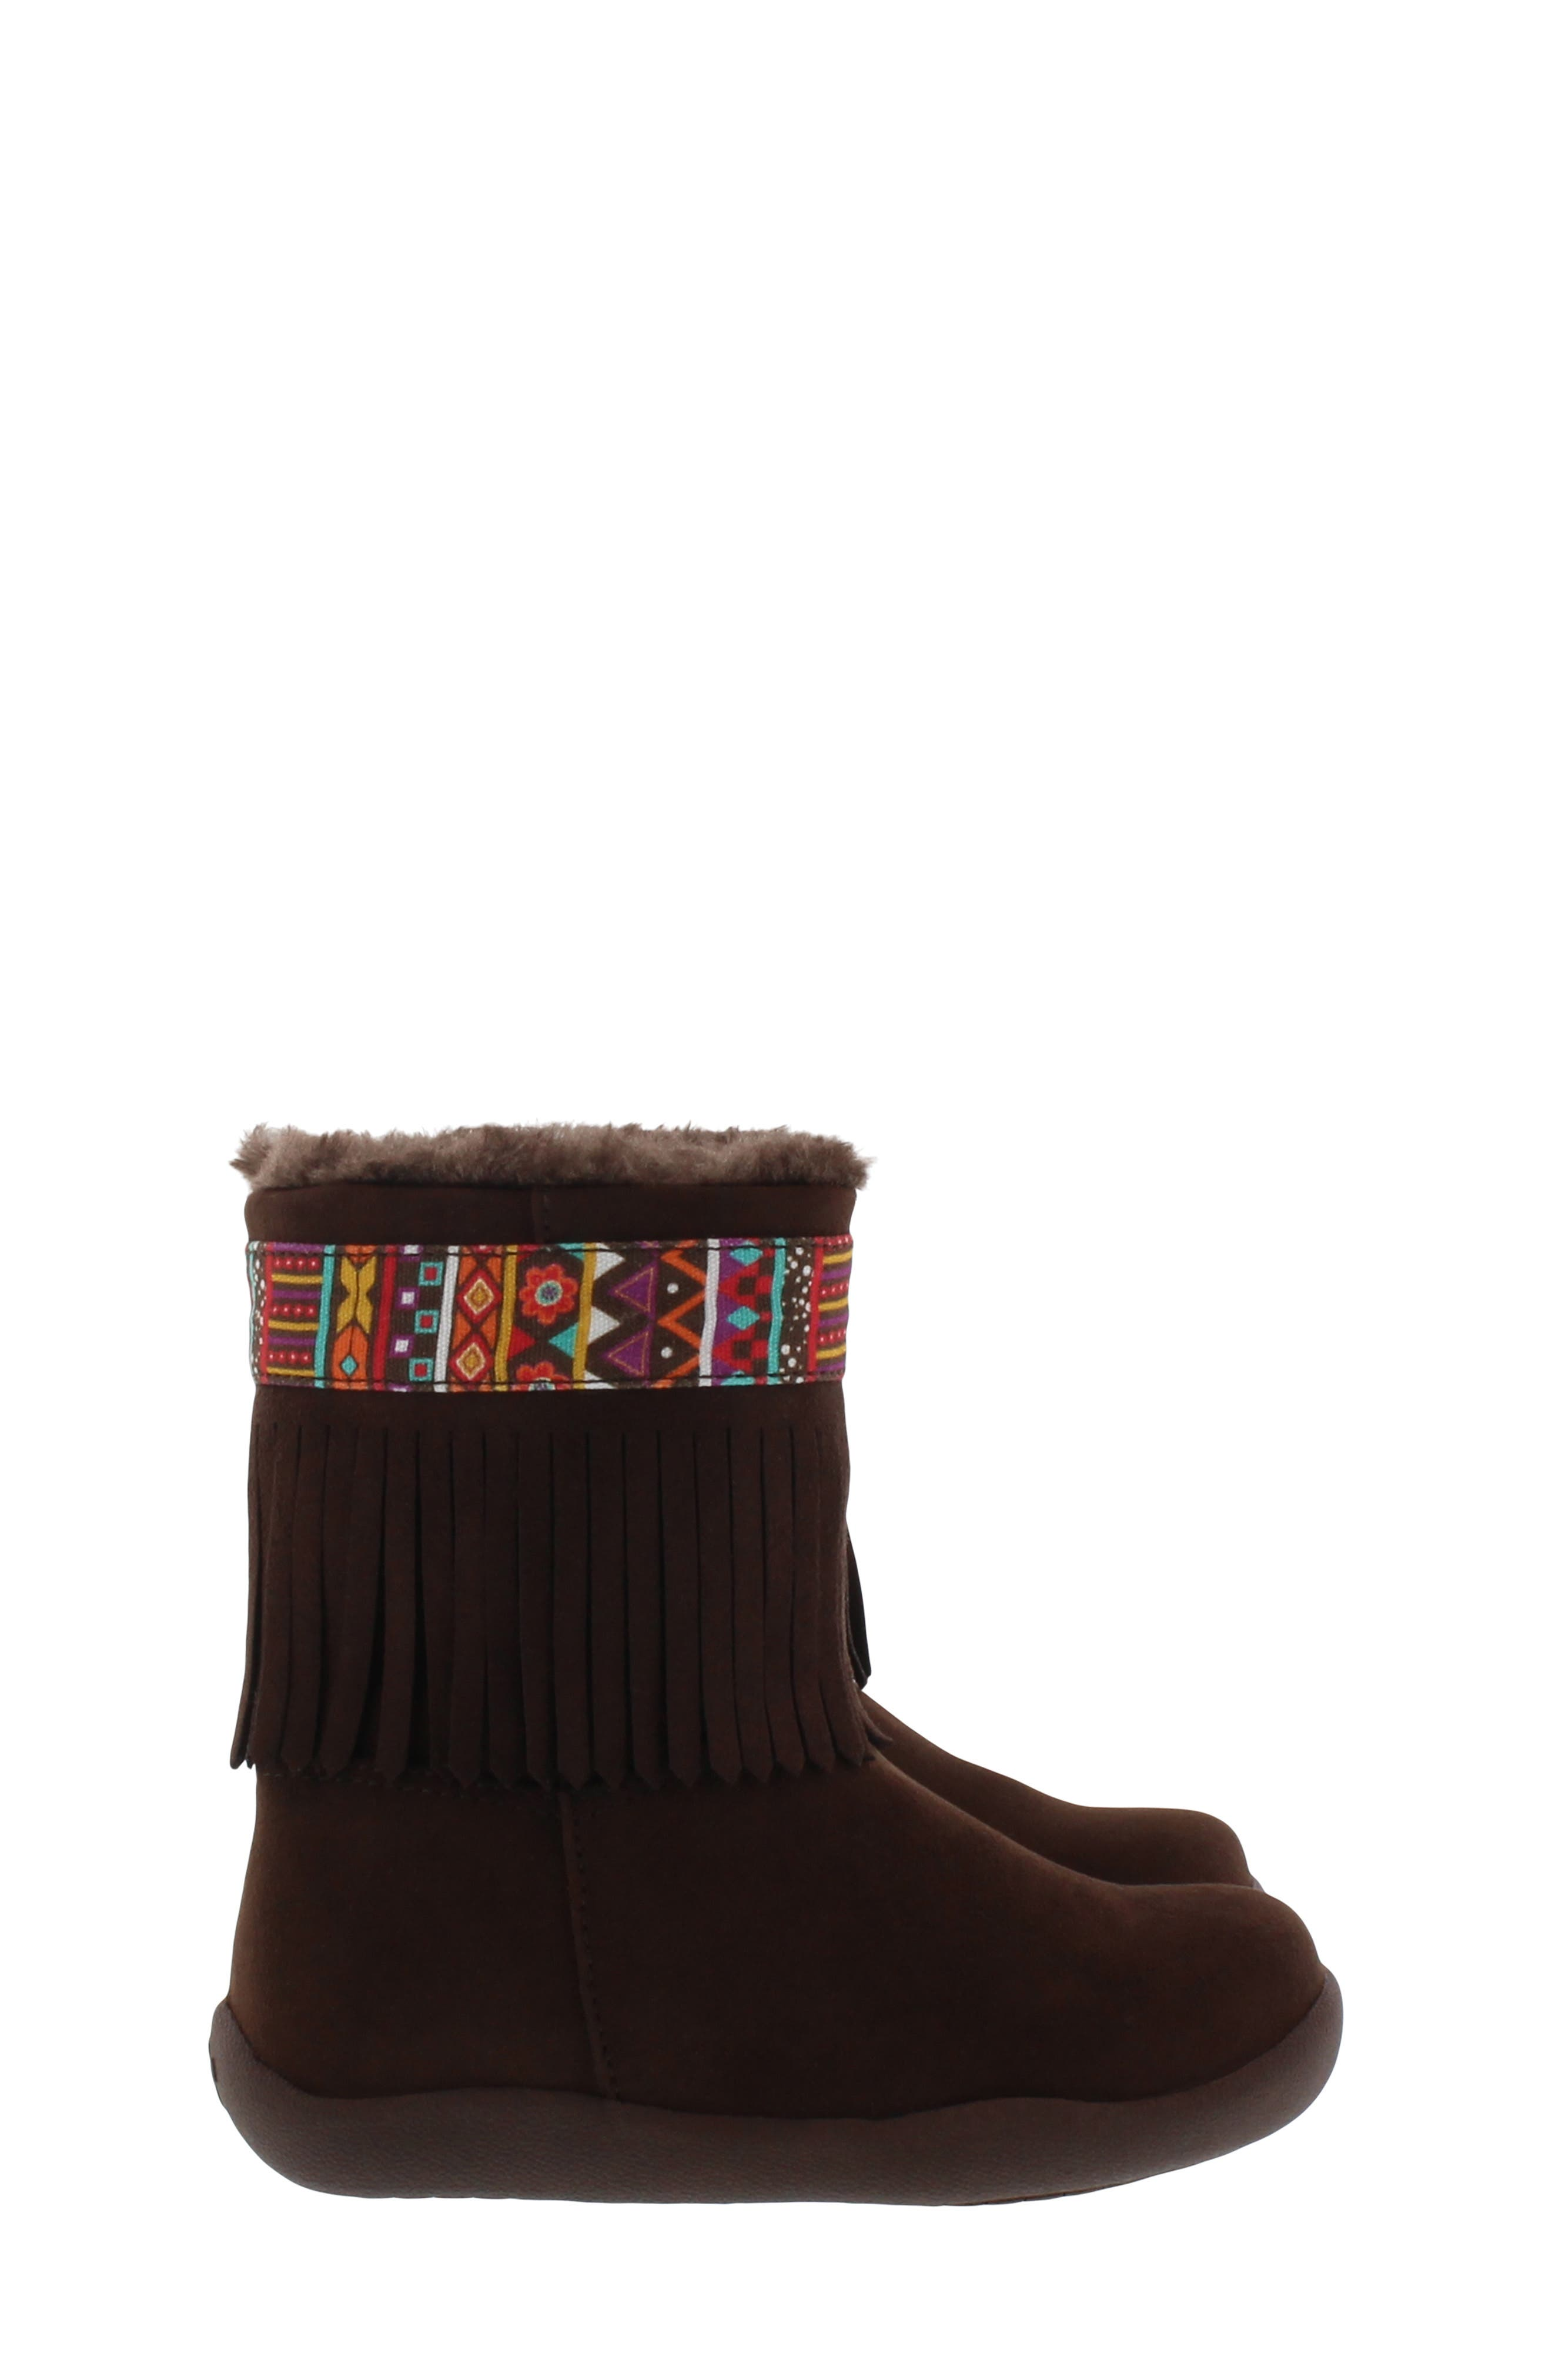 CHOOZE, Faux Fur Fringed Hope Bootie, Alternate thumbnail 3, color, BROWN